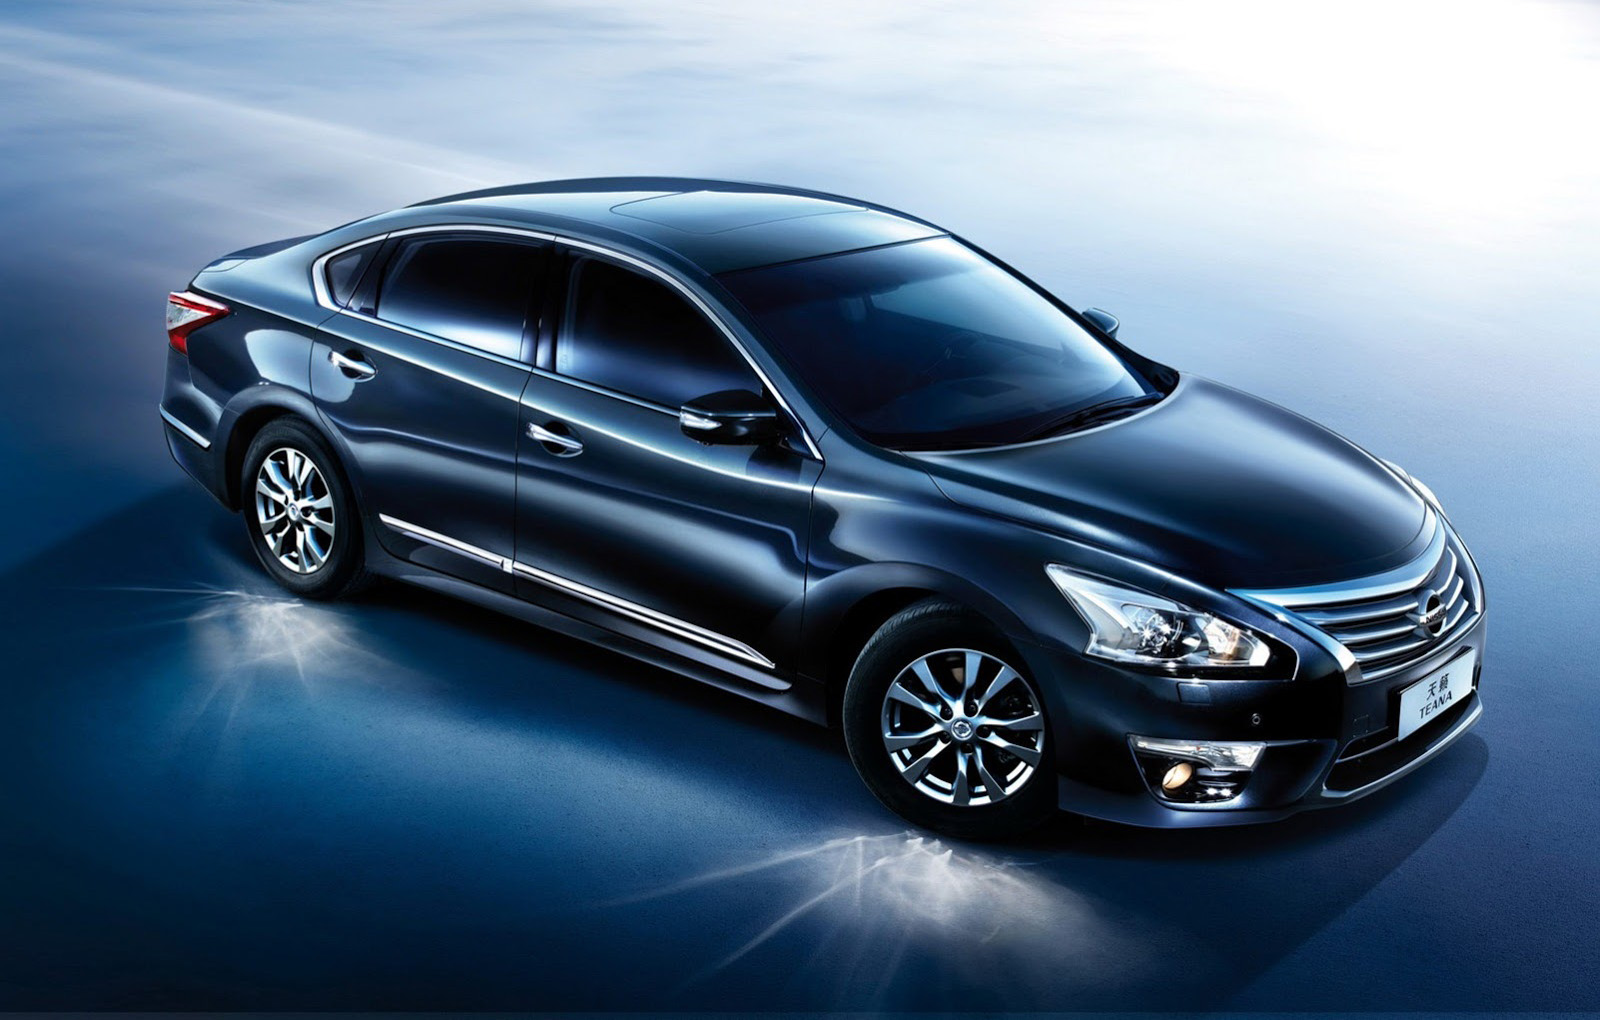 2014 Nissan Altima >> 2014 Nissan Teana unveiled in China, based on Altima Image 158479